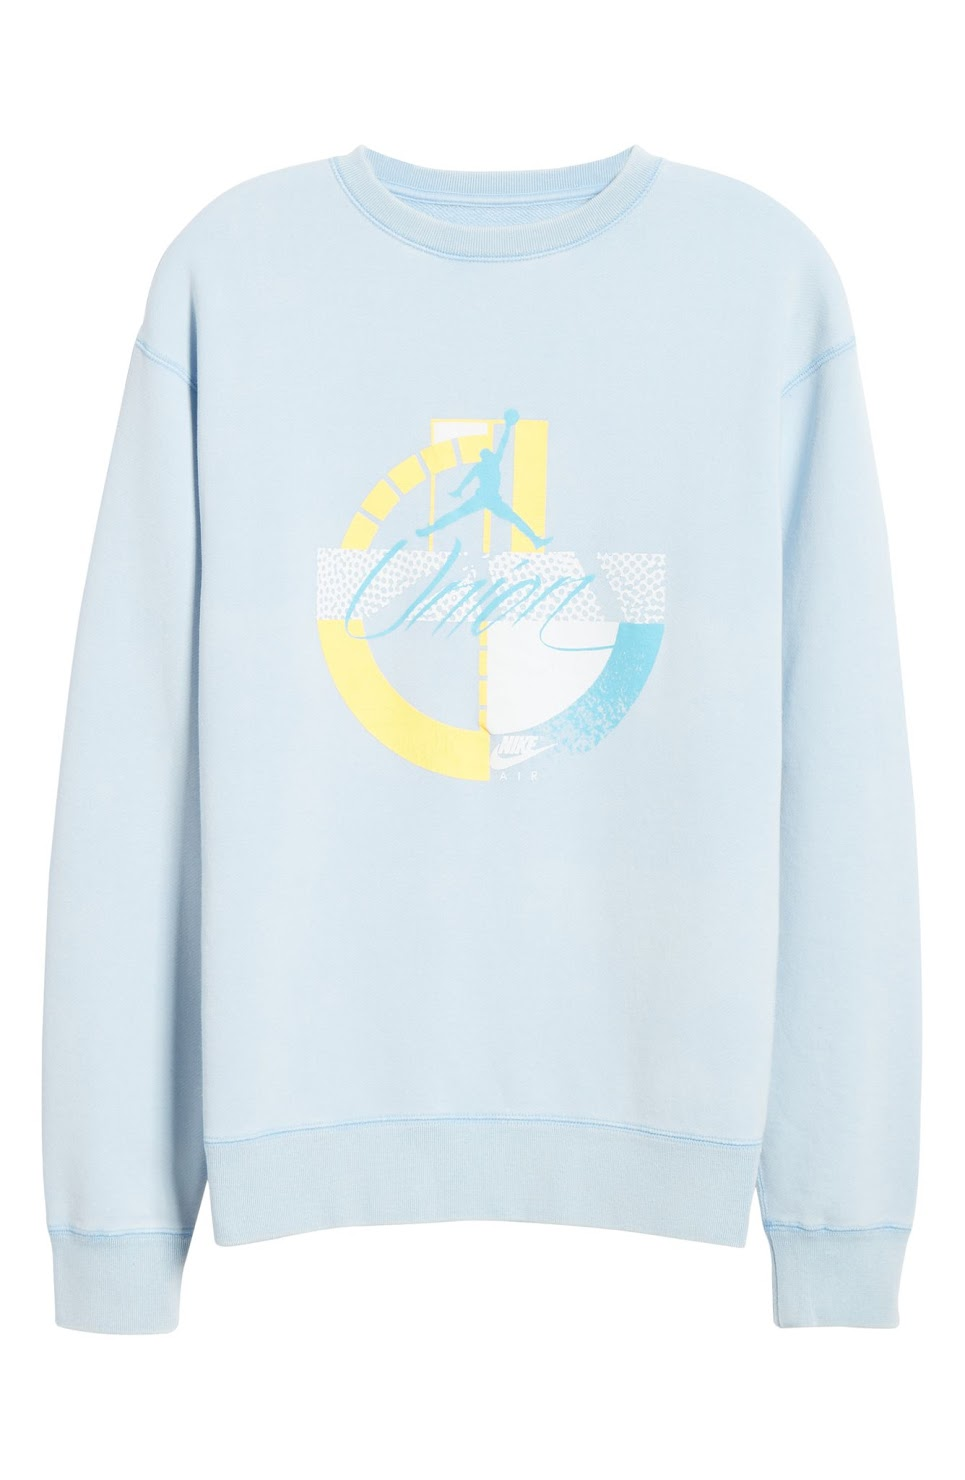 Jordan_Fleece Crewneck in Psychic Blue Seafoam_$75.jpeg